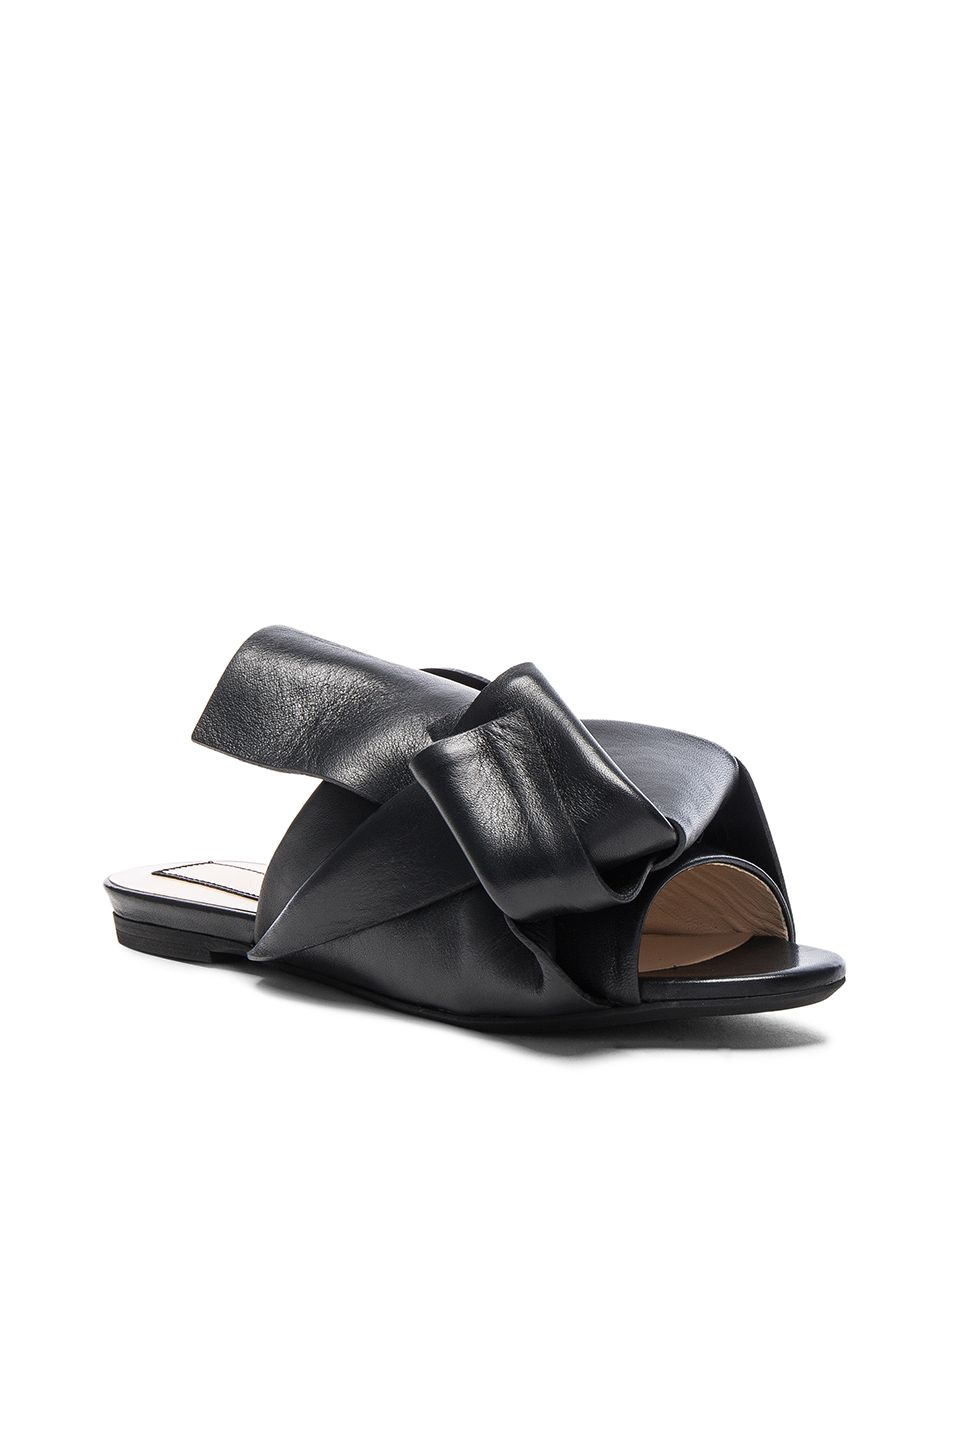 e835a22db926a Image 2 of No. 21 Knot Front Leather Sandals in Black Leather ...